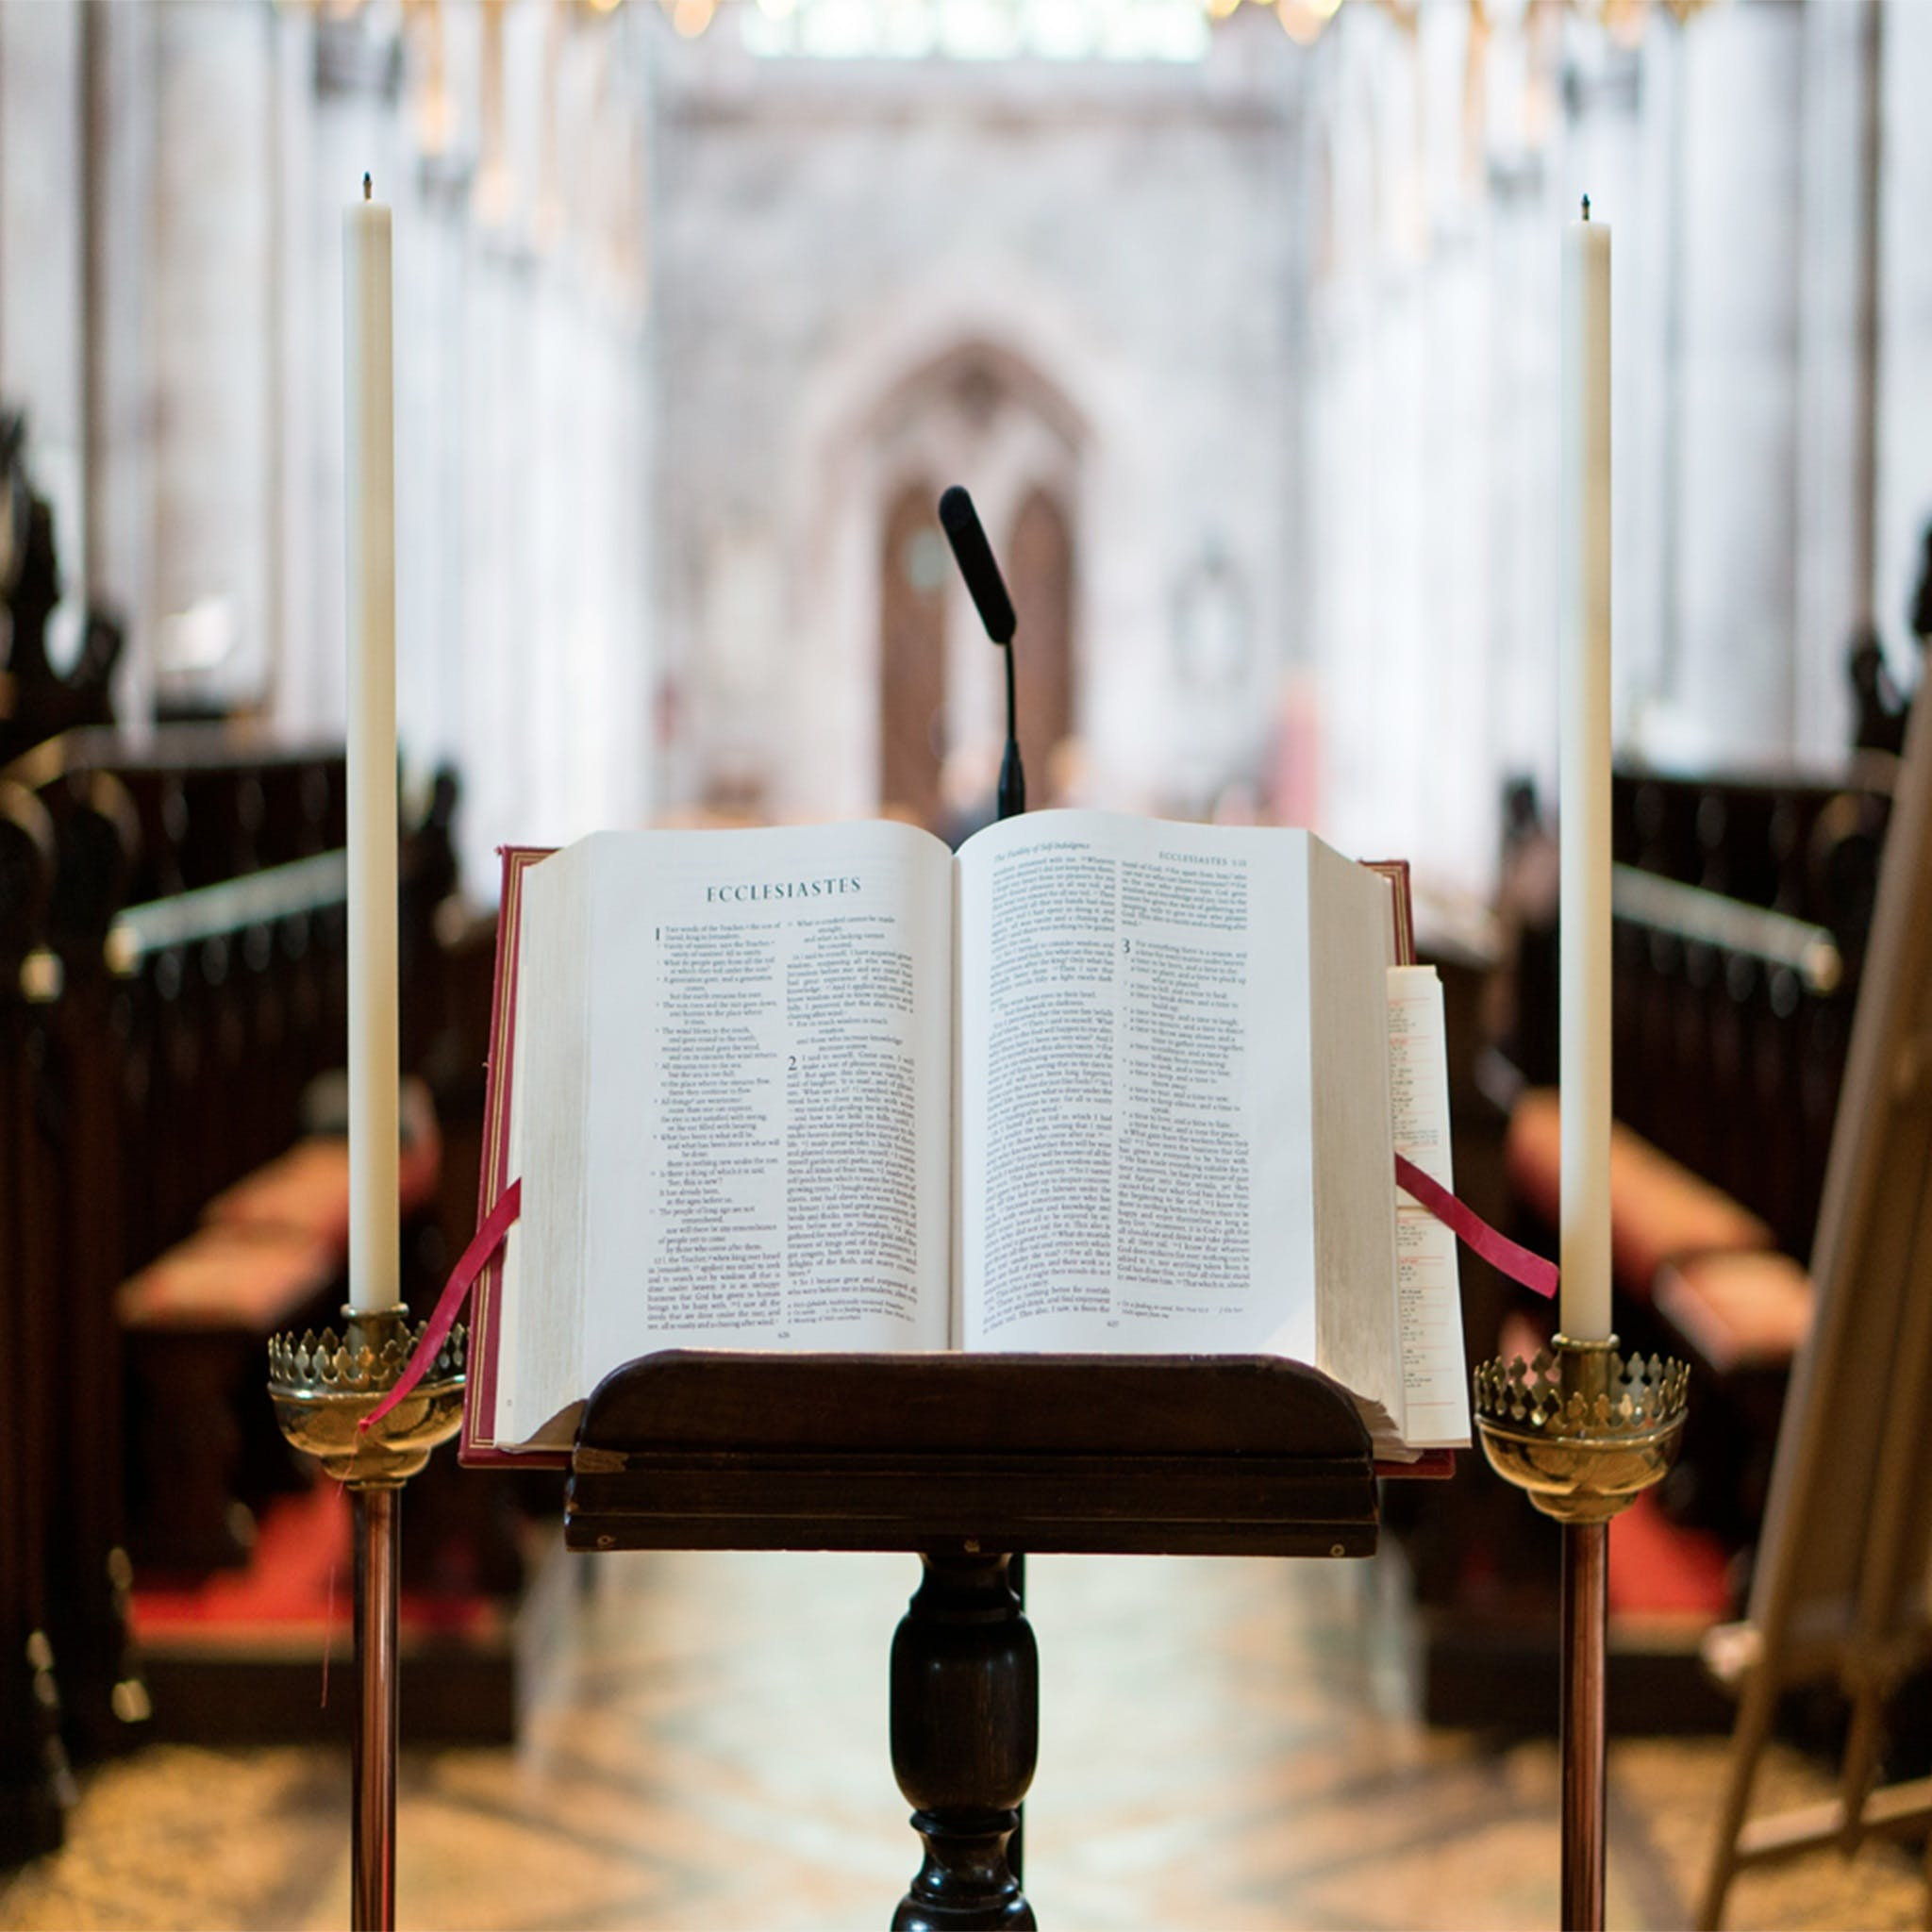 Bible on Stand Between Candles Inside Hall